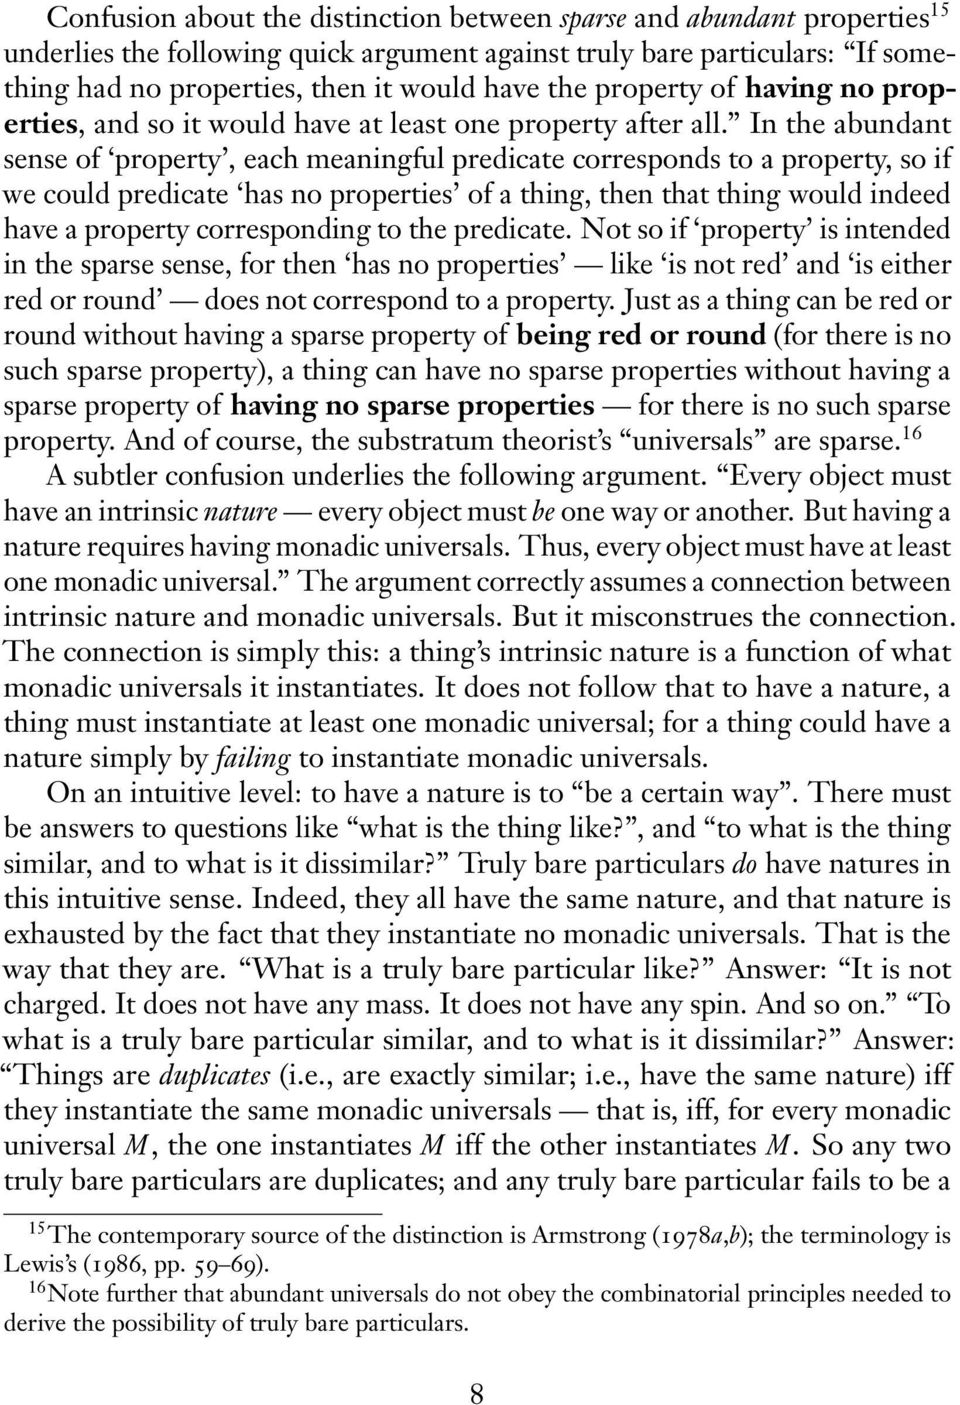 In the abundant sense of property, each meaningful predicate corresponds to a property, so if we could predicate has no properties of a thing, then that thing would indeed have a property